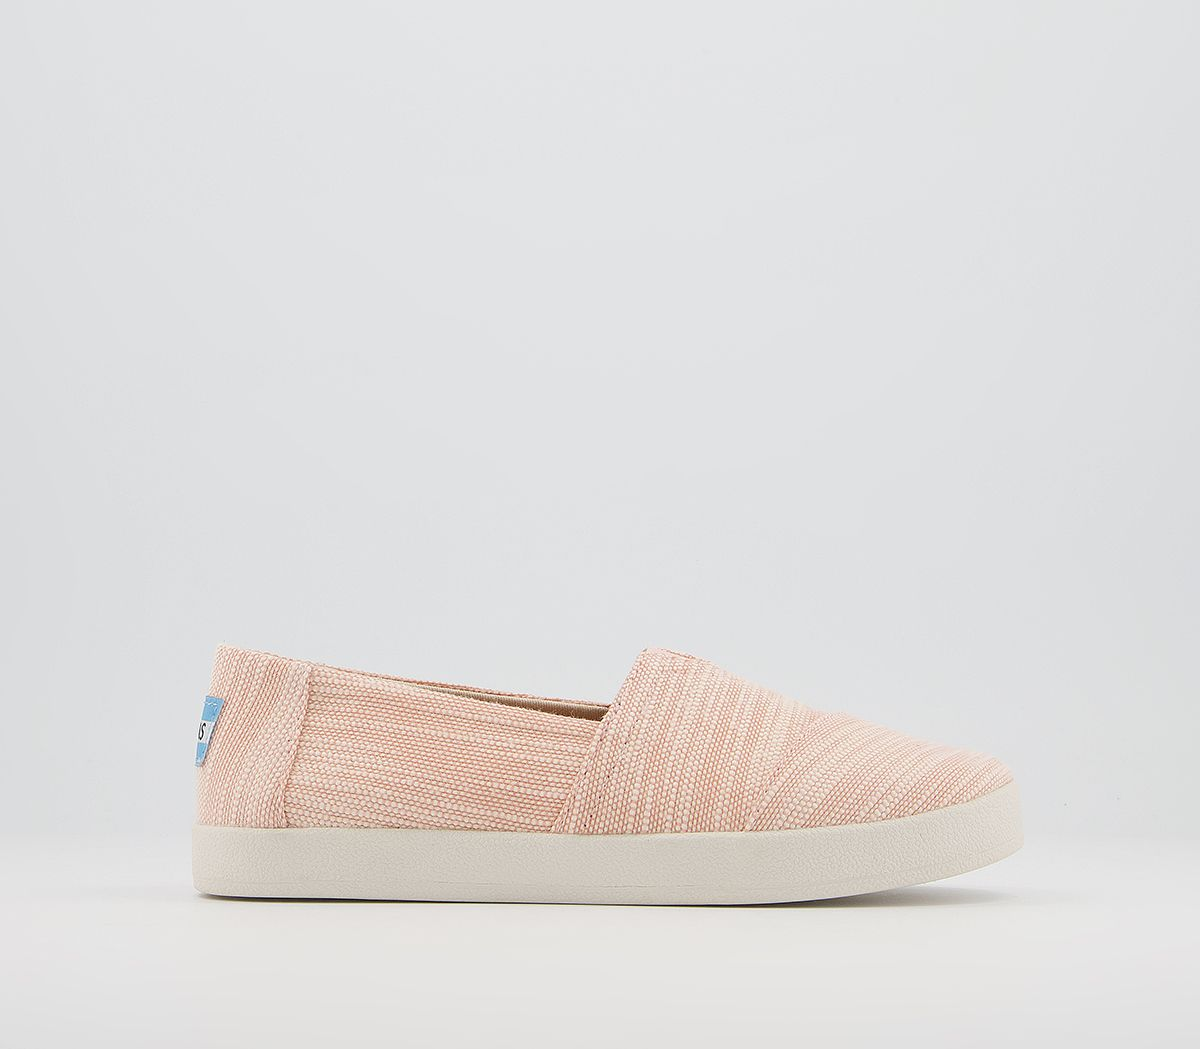 a85f329d46a Toms Avalon Sneakers Bloom Slubby Cotton - Flats